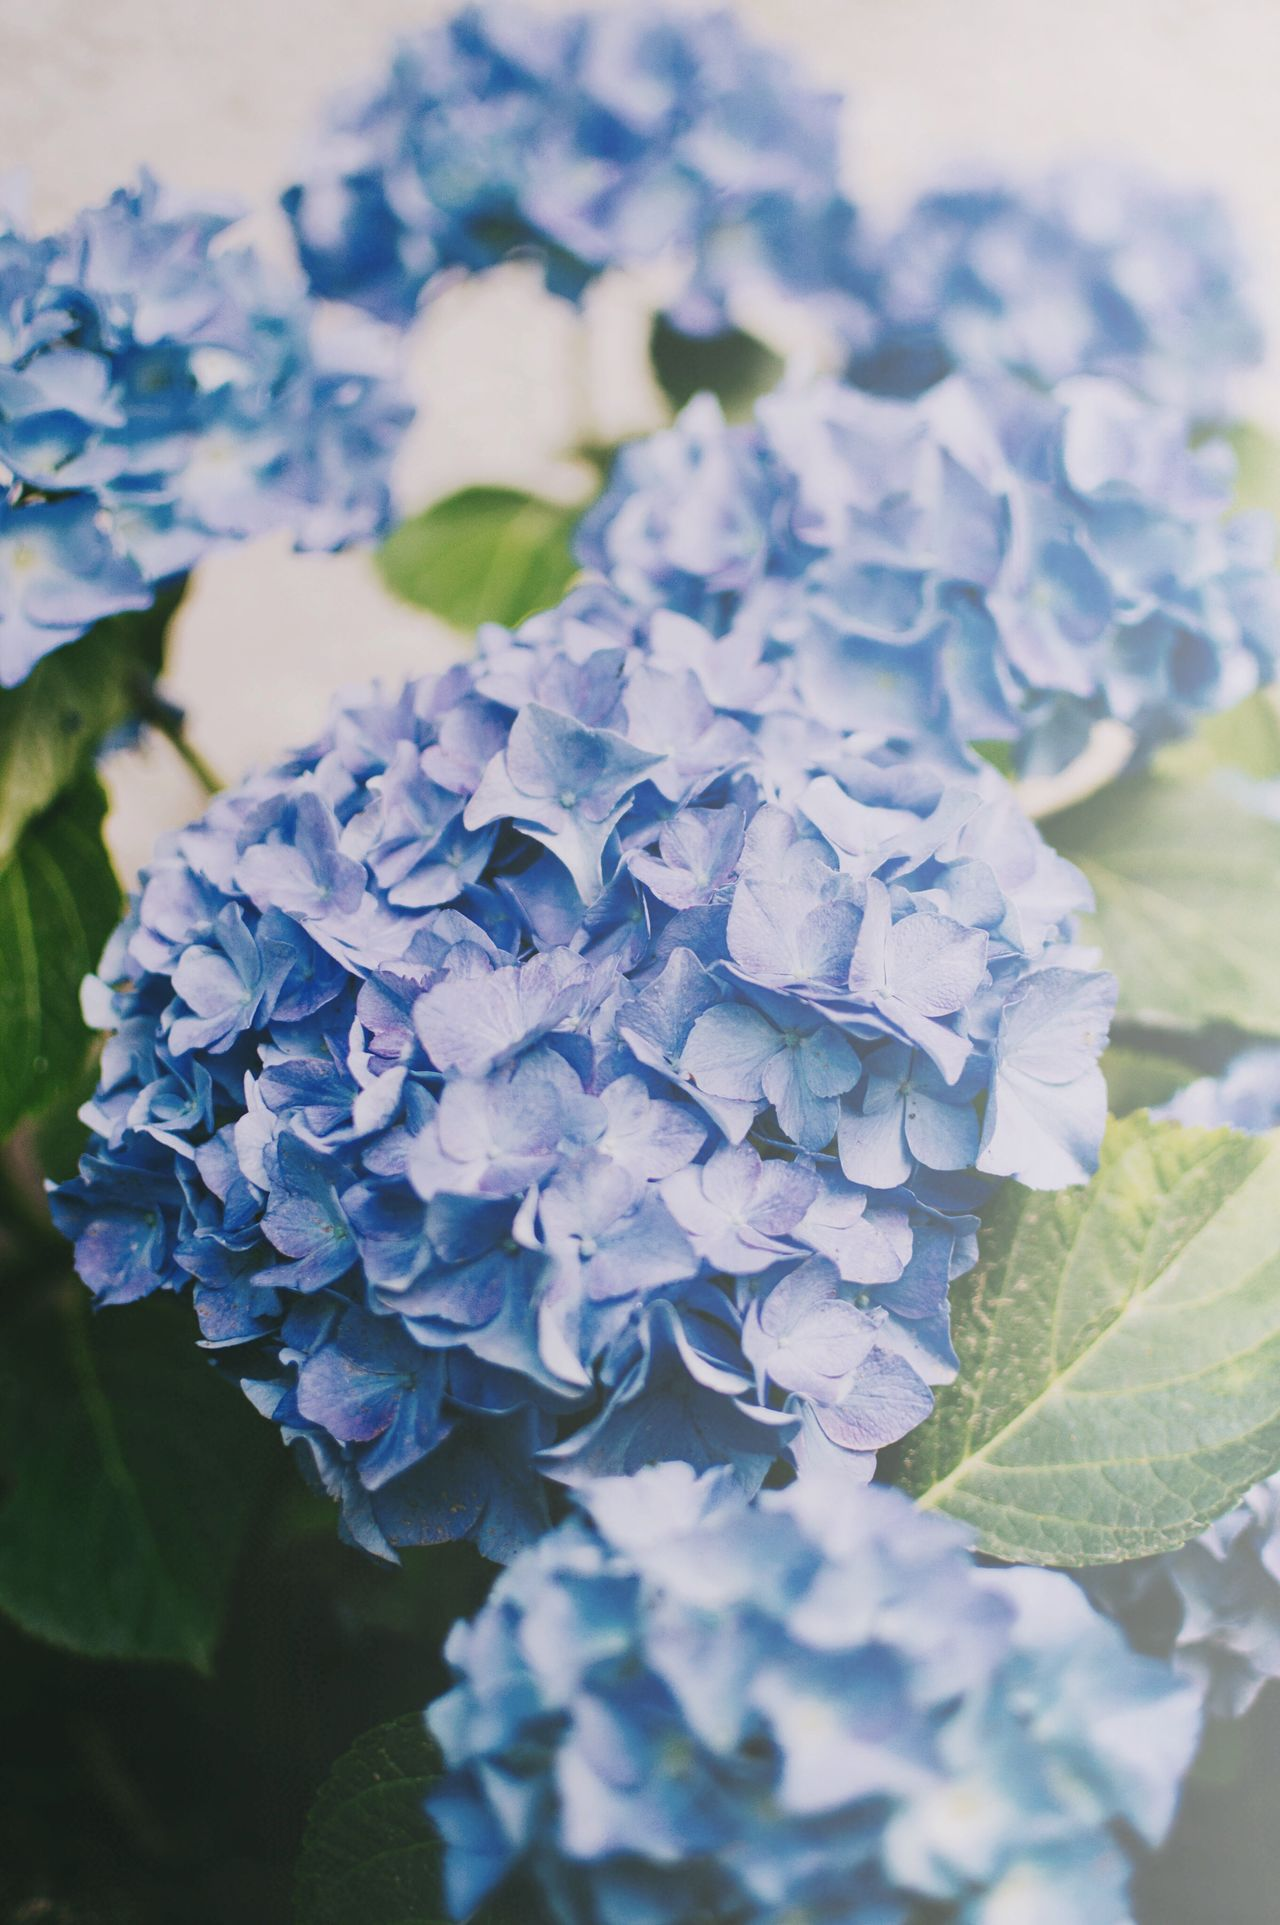 Hydrangea time 💙 Hydrangea Flower Flower Head Flower Collection Summertime Beauty In Nature Nature Fragility Plant Growth Freshness Blooming Outdoors EyeEm Best Shots EyeEm Nature Lover EyeEm Gallery Live For The Story Place Of Heart